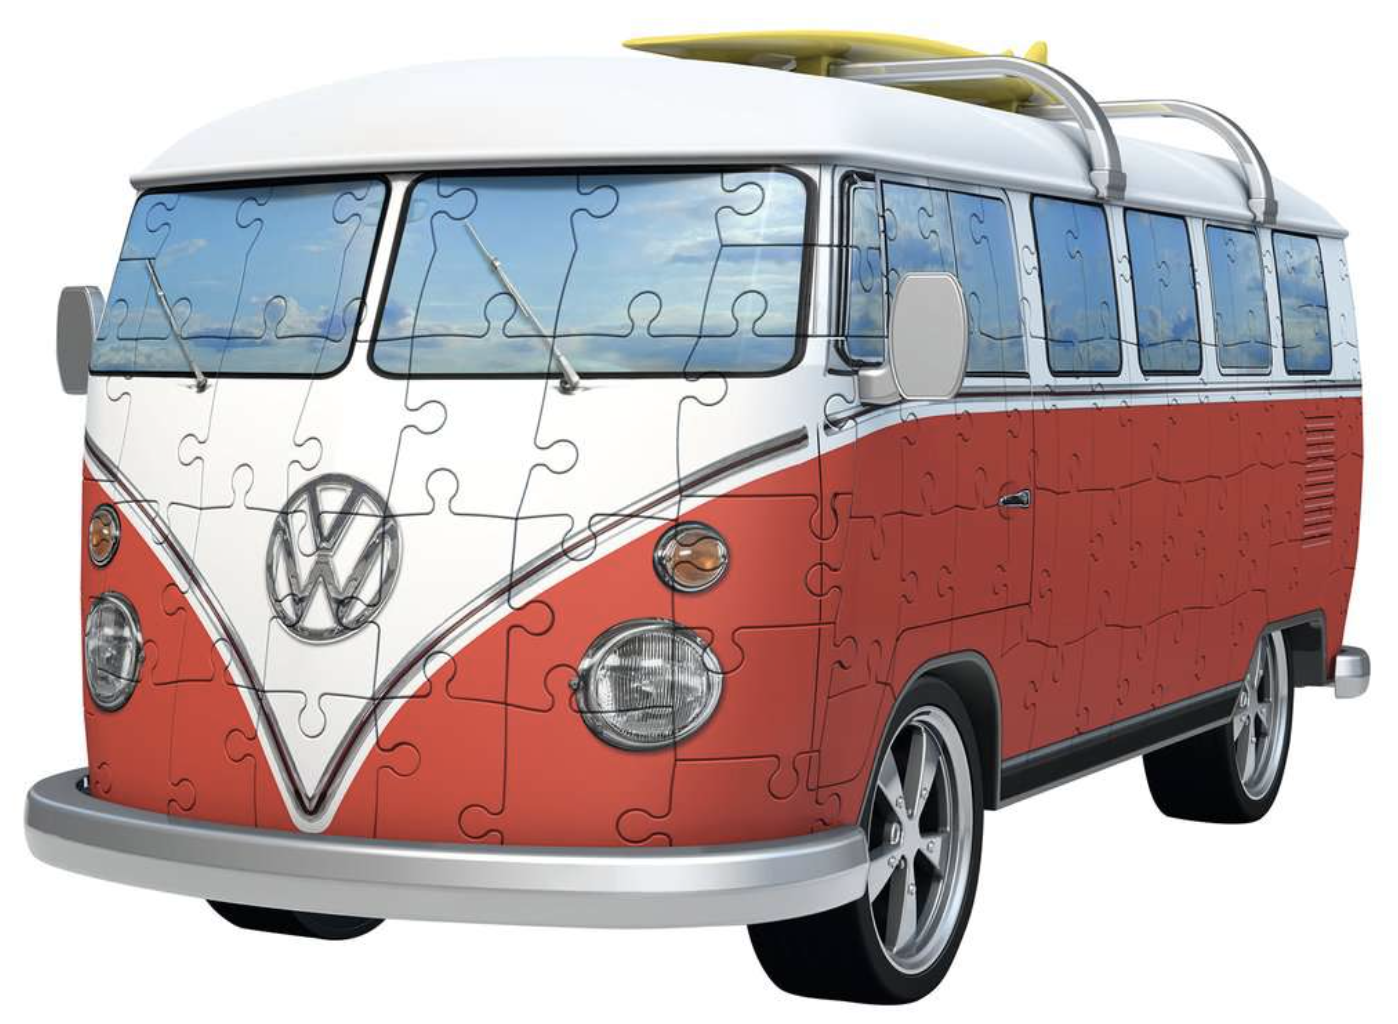 VW Volkswagon Bus T1 Surfer Edition Campervan 162 Piece 3D Puzzle by Ravensburger